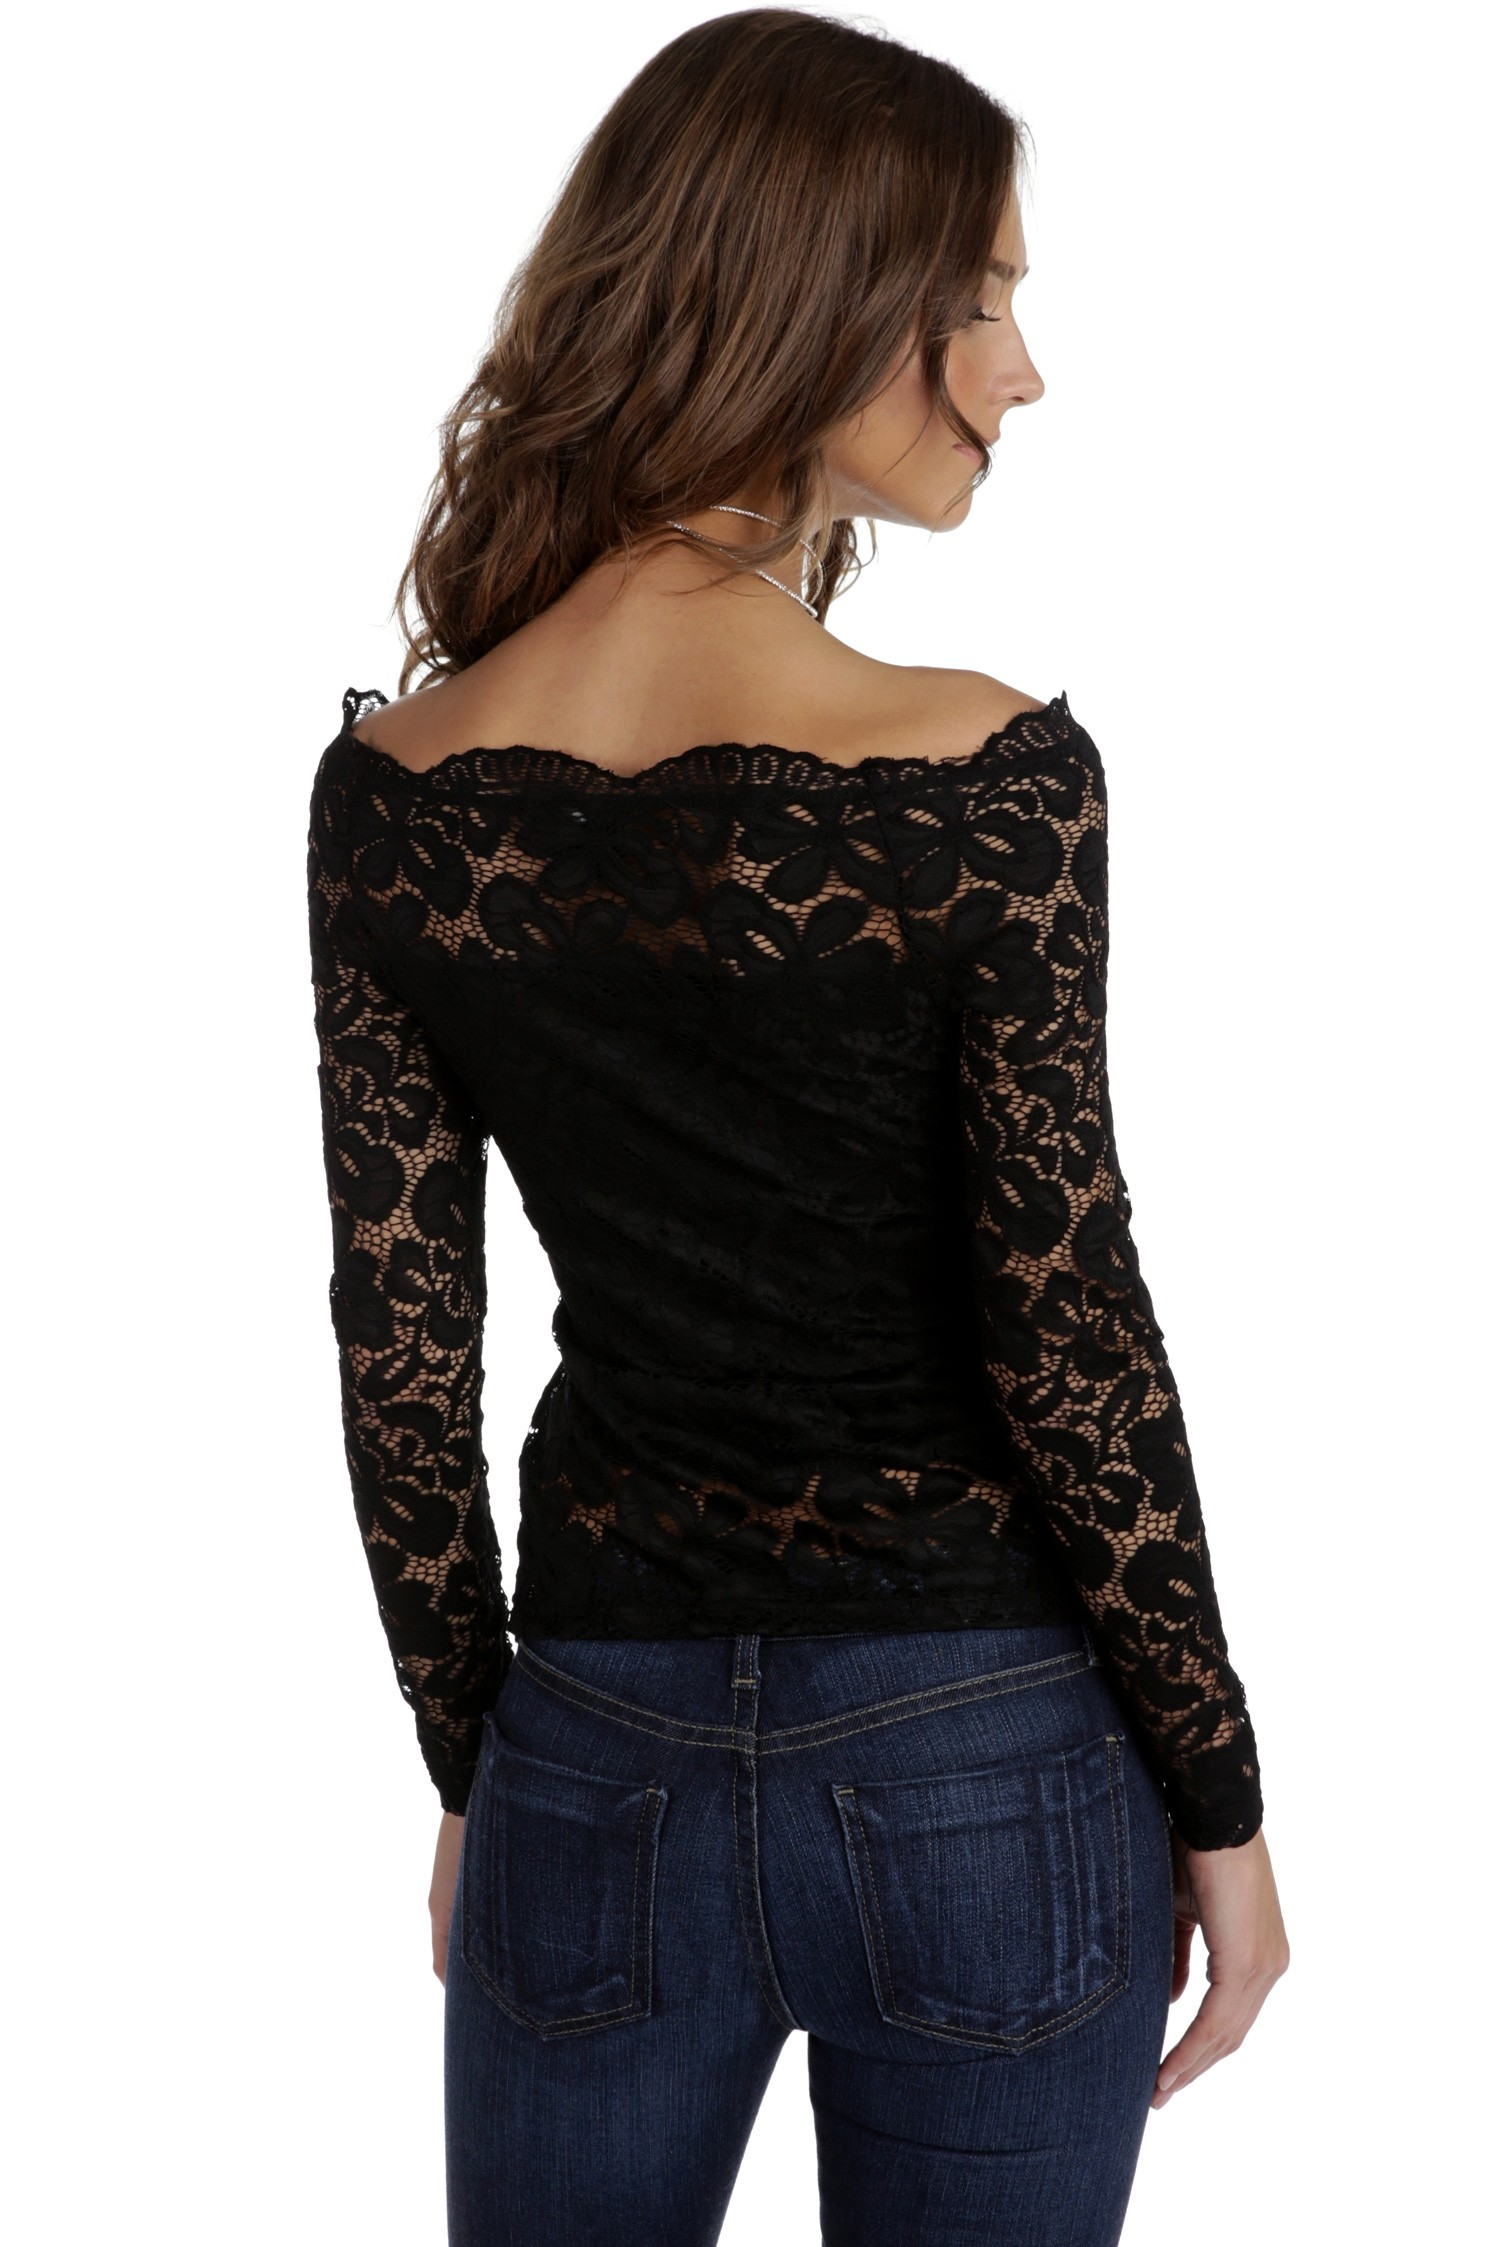 black lace tops final sale- black cover me in lace top GTWGPKC